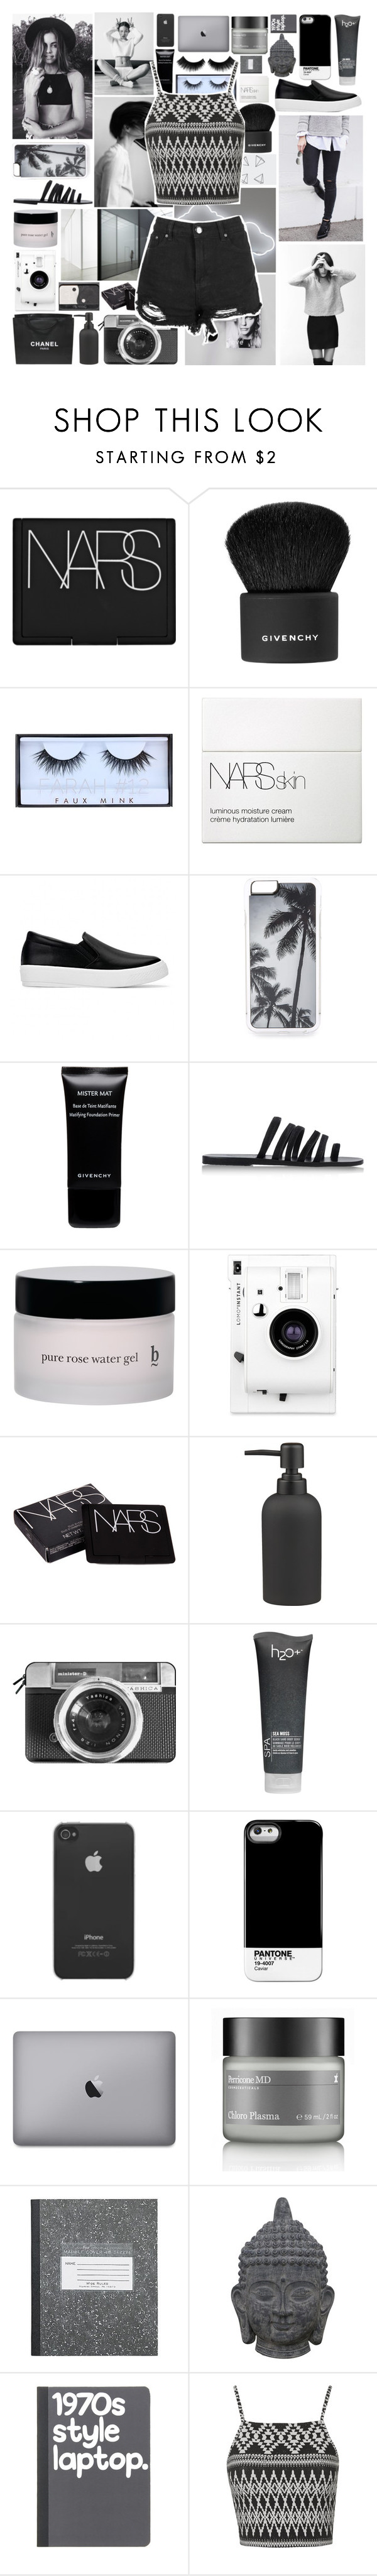 """I'm so Into You,I can Barely Breathe//Ivory"" by clairexivory ❤ liked on Polyvore featuring NARS Cosmetics, Givenchy, Huda Beauty, Zero Gravity, Ancient Greek Sandals, Lomography, Chanel, CO, CB2 and Casetify"